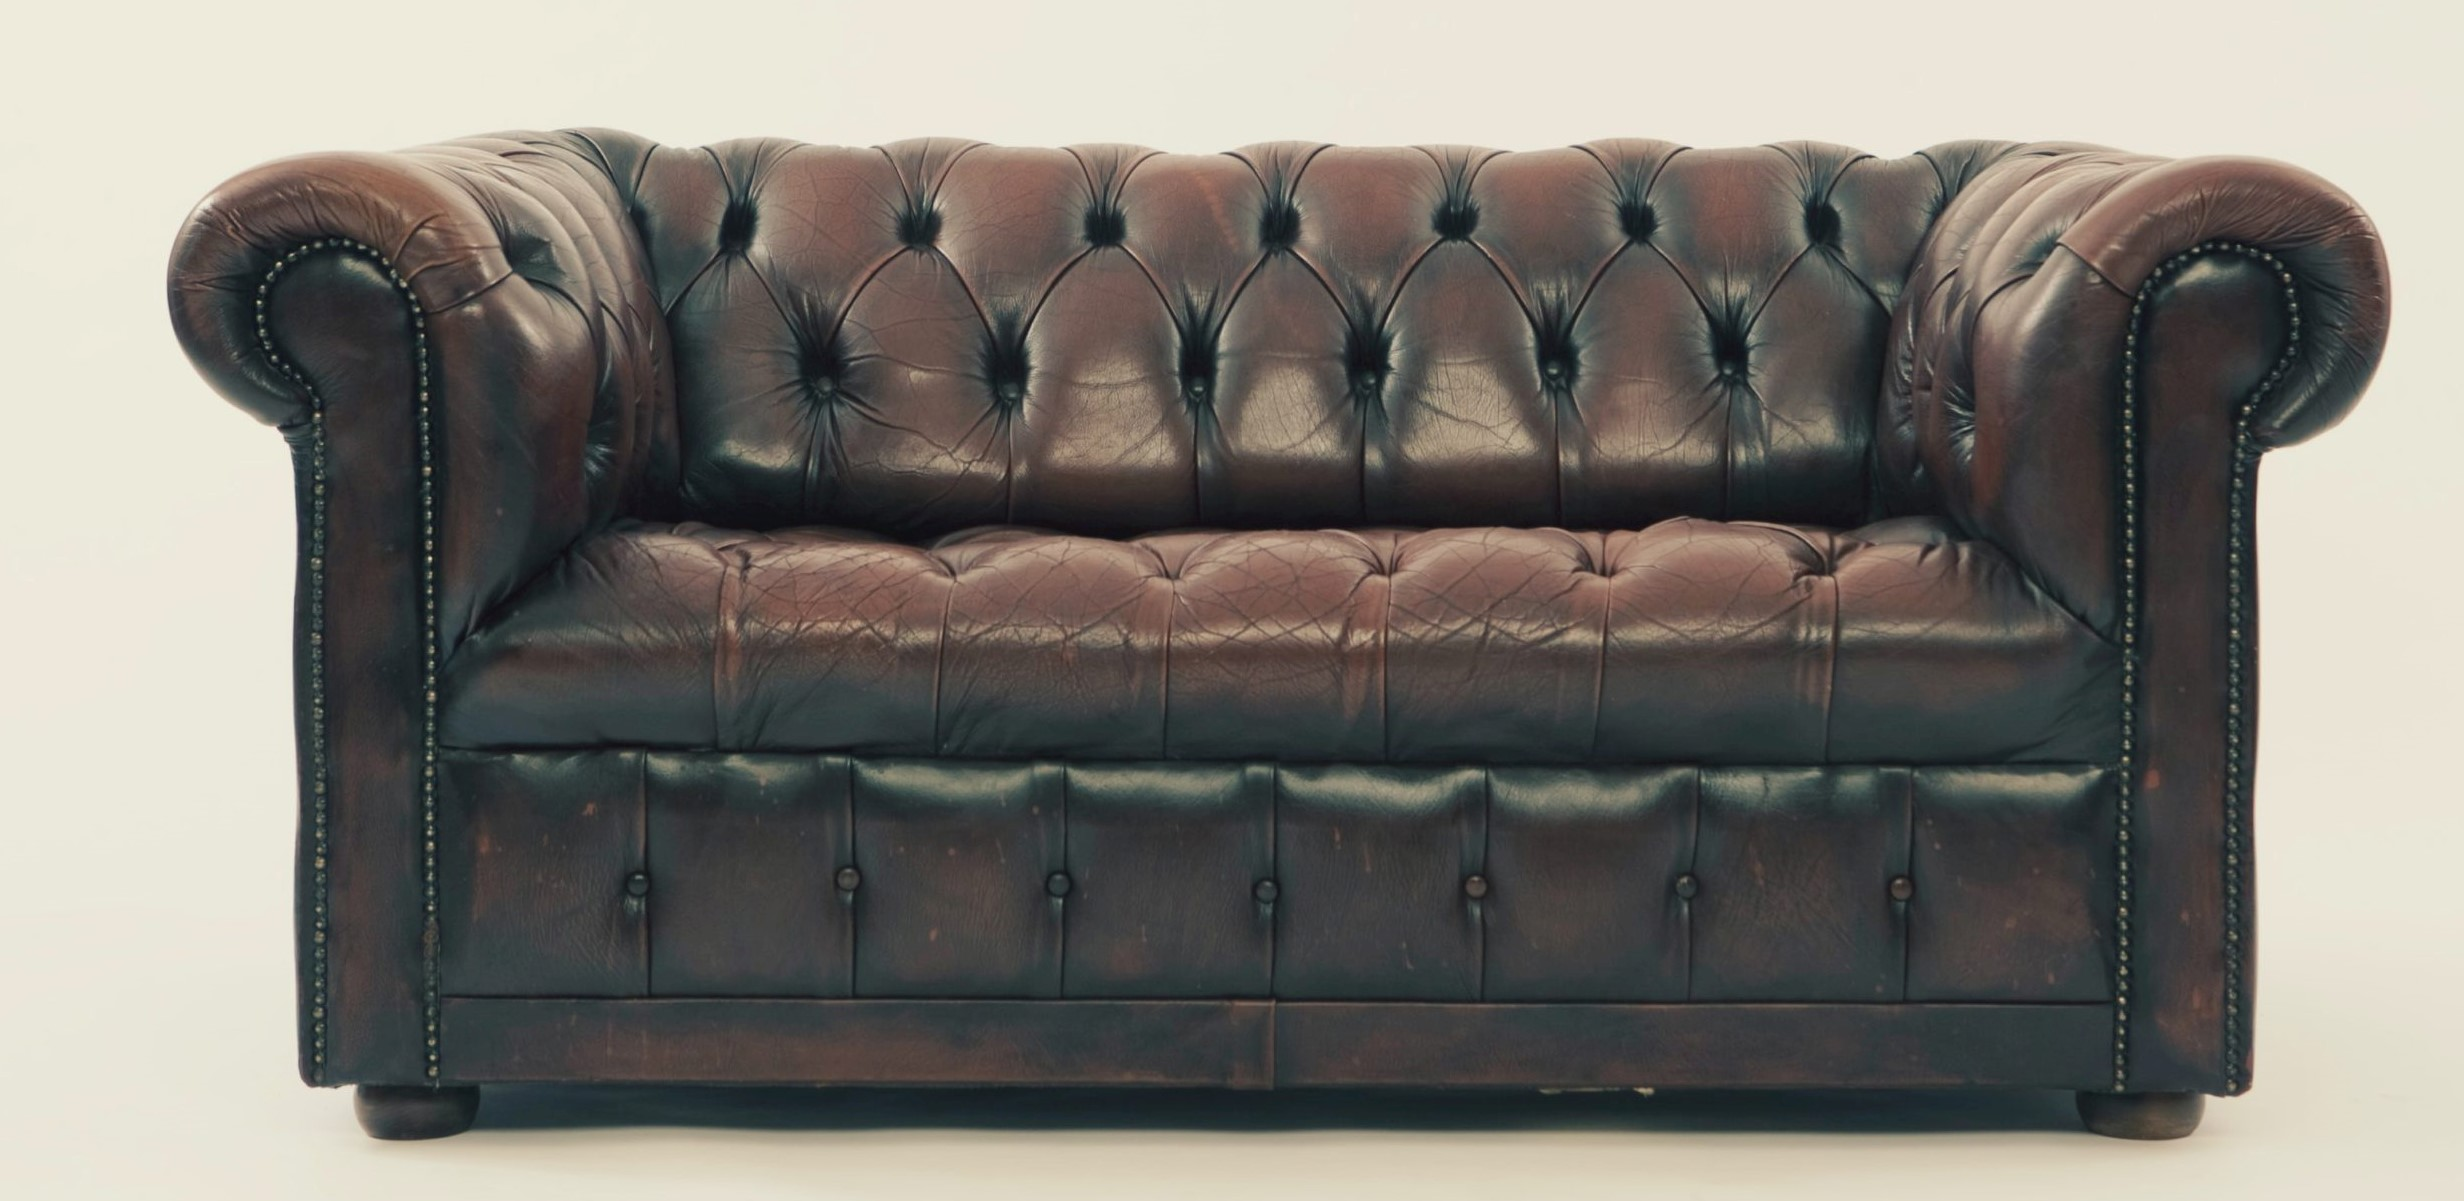 Imperial Cleaning – How to clean a leather couch?